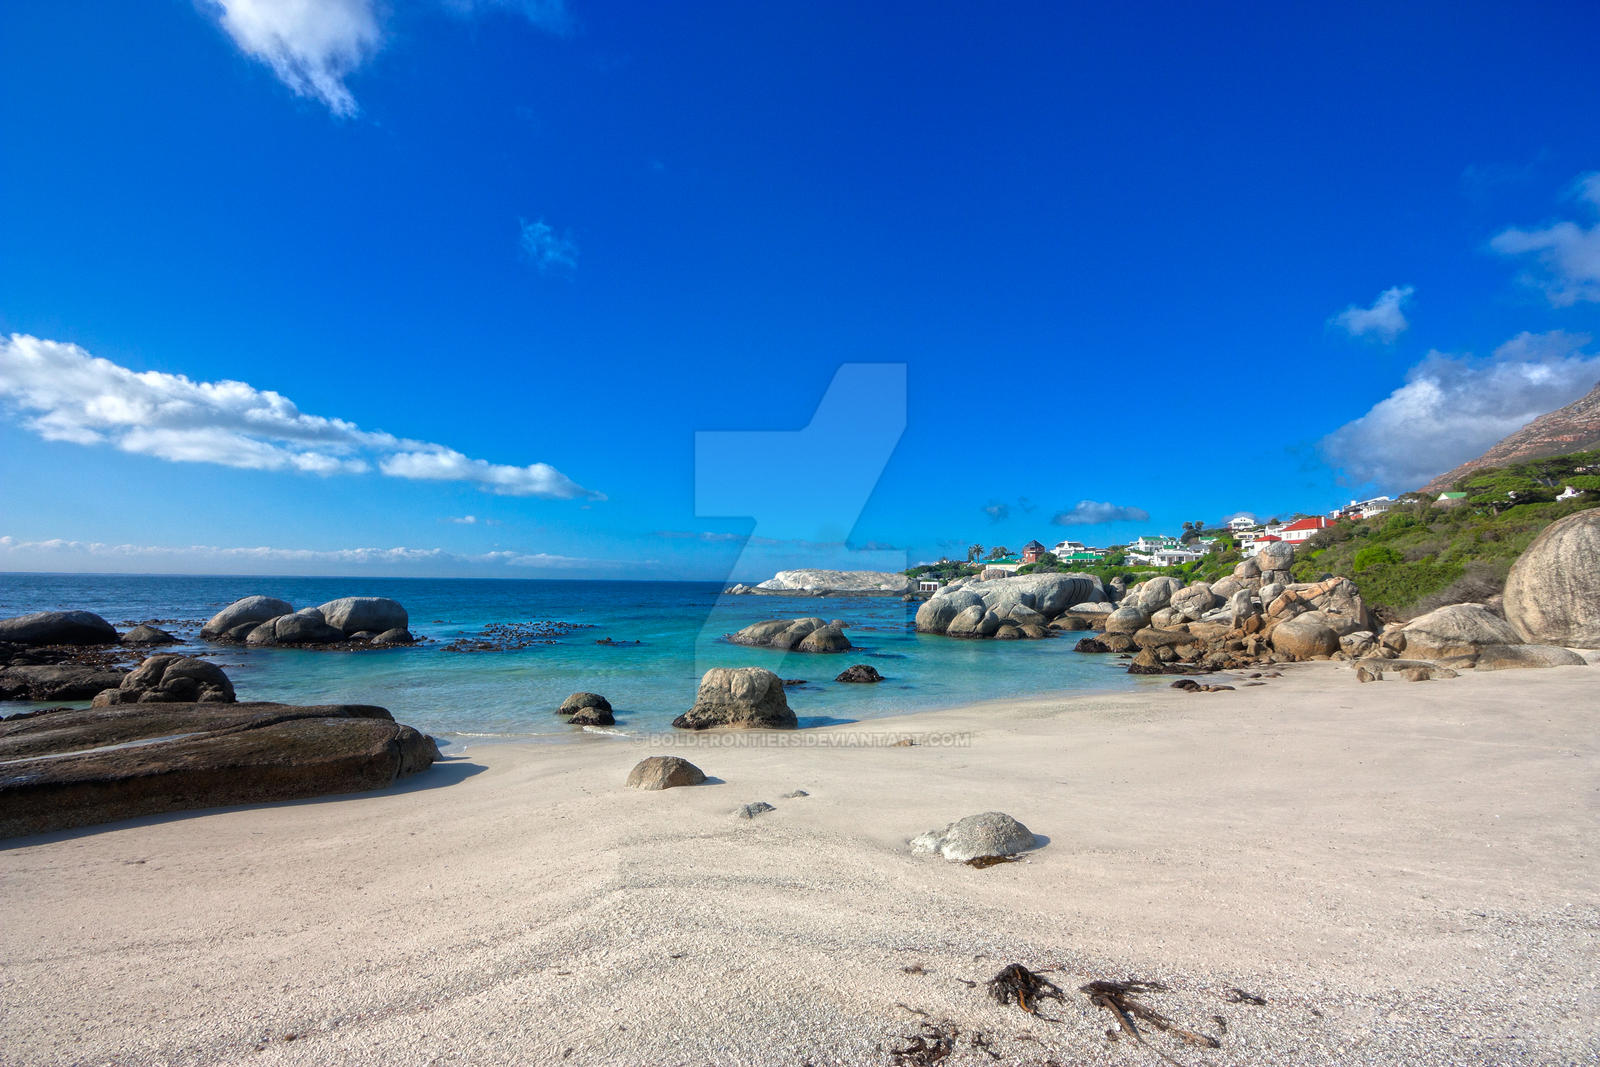 Boulder Beach VI - Exclusive HDR by somadjinn